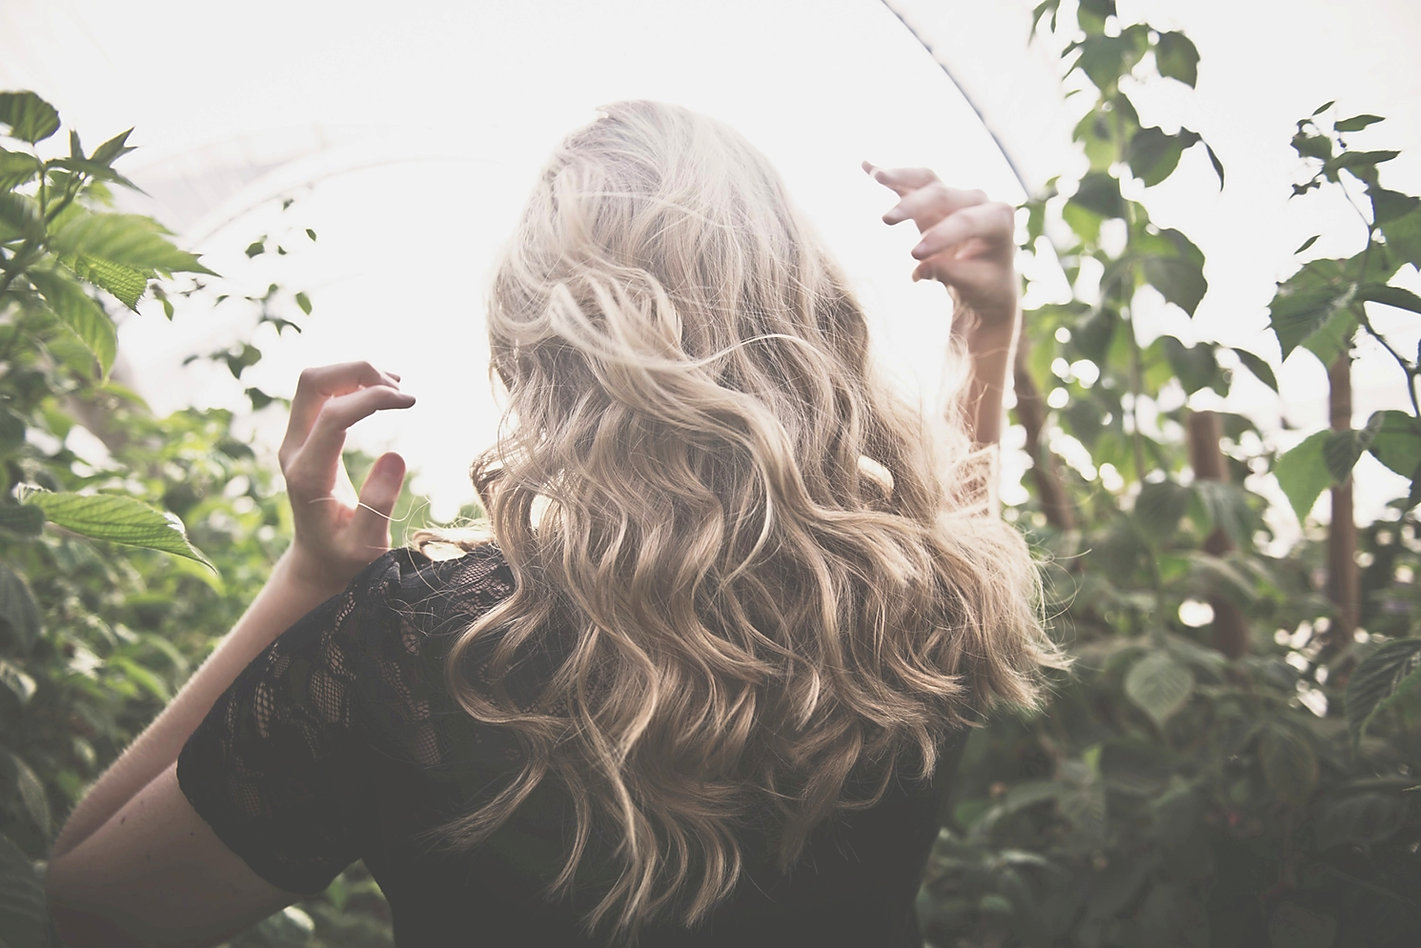 Blond%252520Wavy%252520Hair_edited_edite